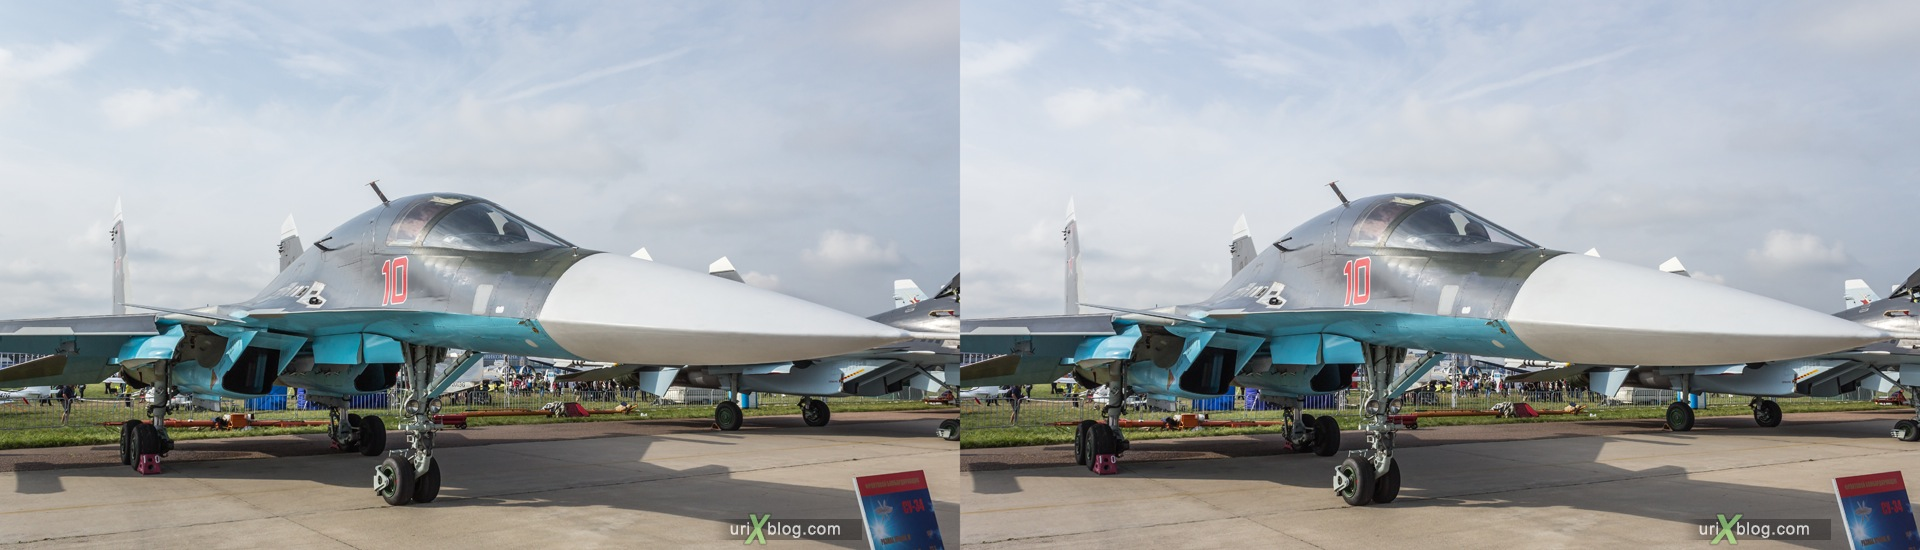 2013, Su-34, MAKS, International Aviation and Space Salon, Russia, Soviet, USSR, Ramenskoye airfield, airplane, 3D, stereo pair, cross-eyed, crossview, cross view stereo pair, stereoscopic